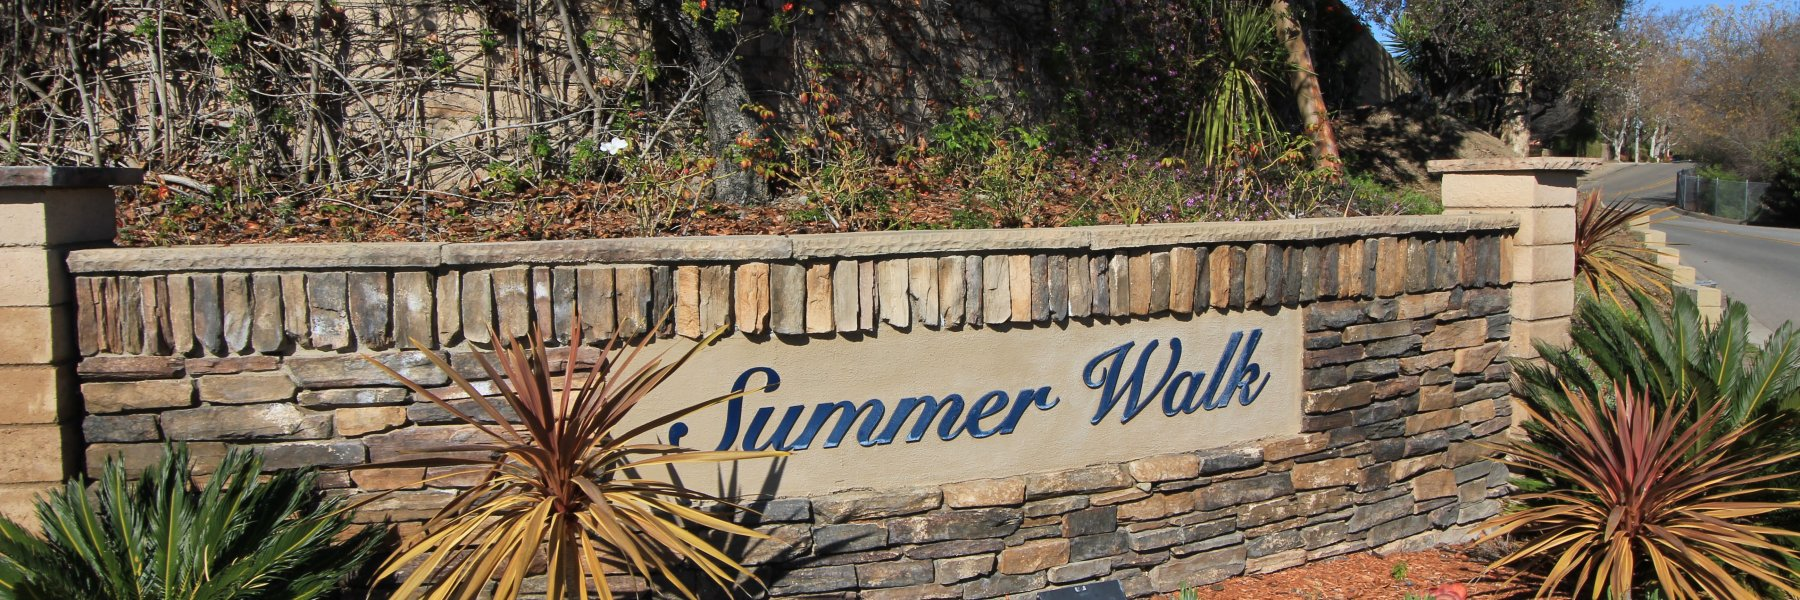 Summer Walk is a gated community in San Juan Capistrano